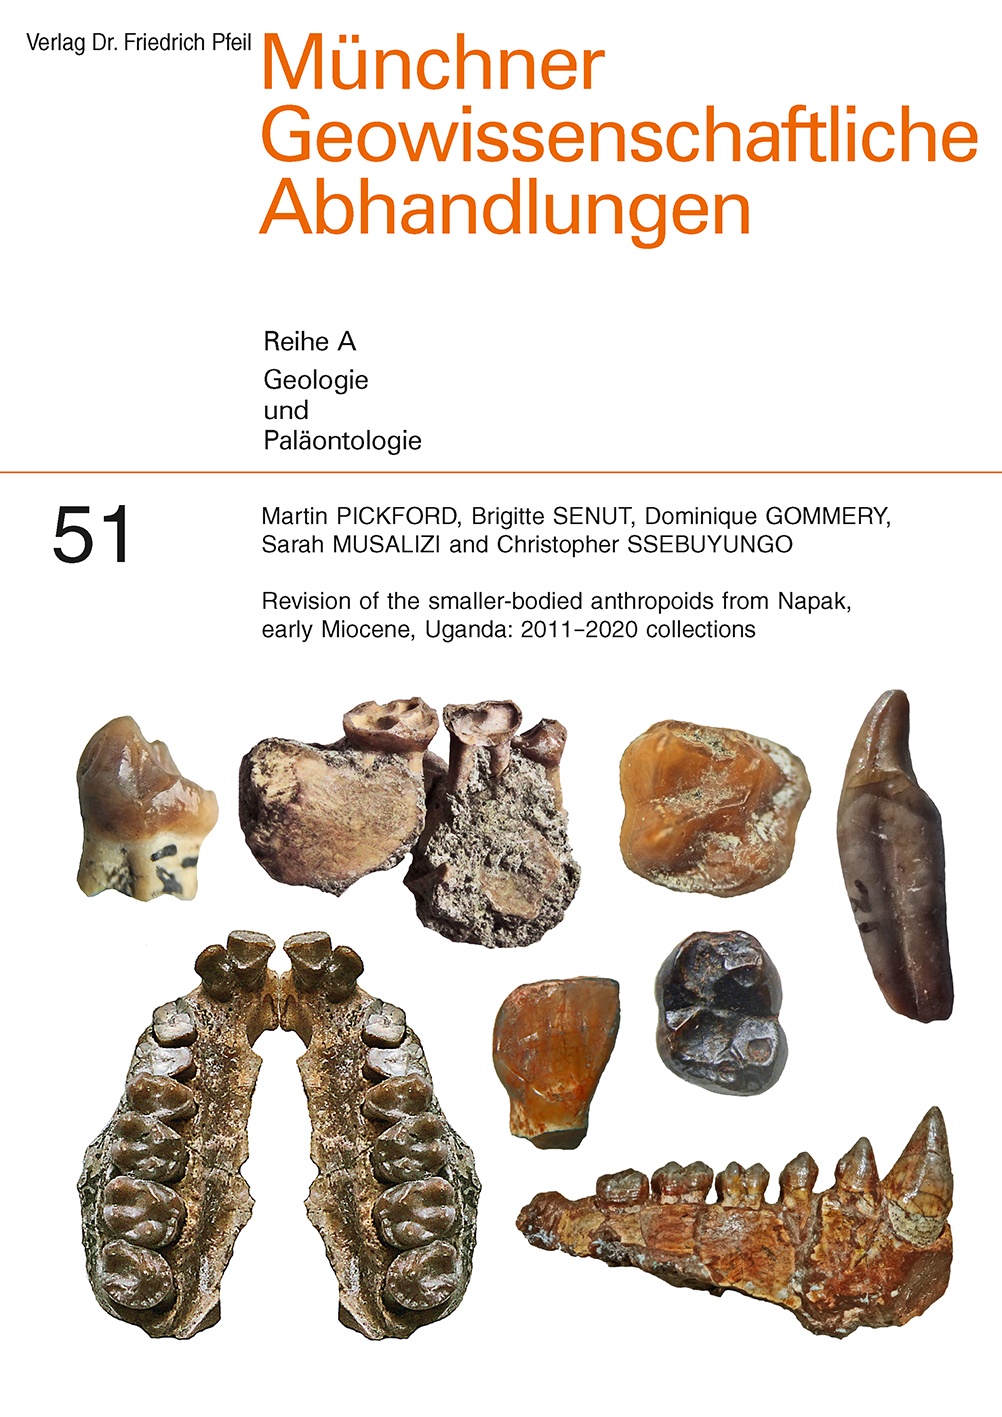 Revision of the smaller-bodied anthropoids from Napak, early Miocene, Uganda